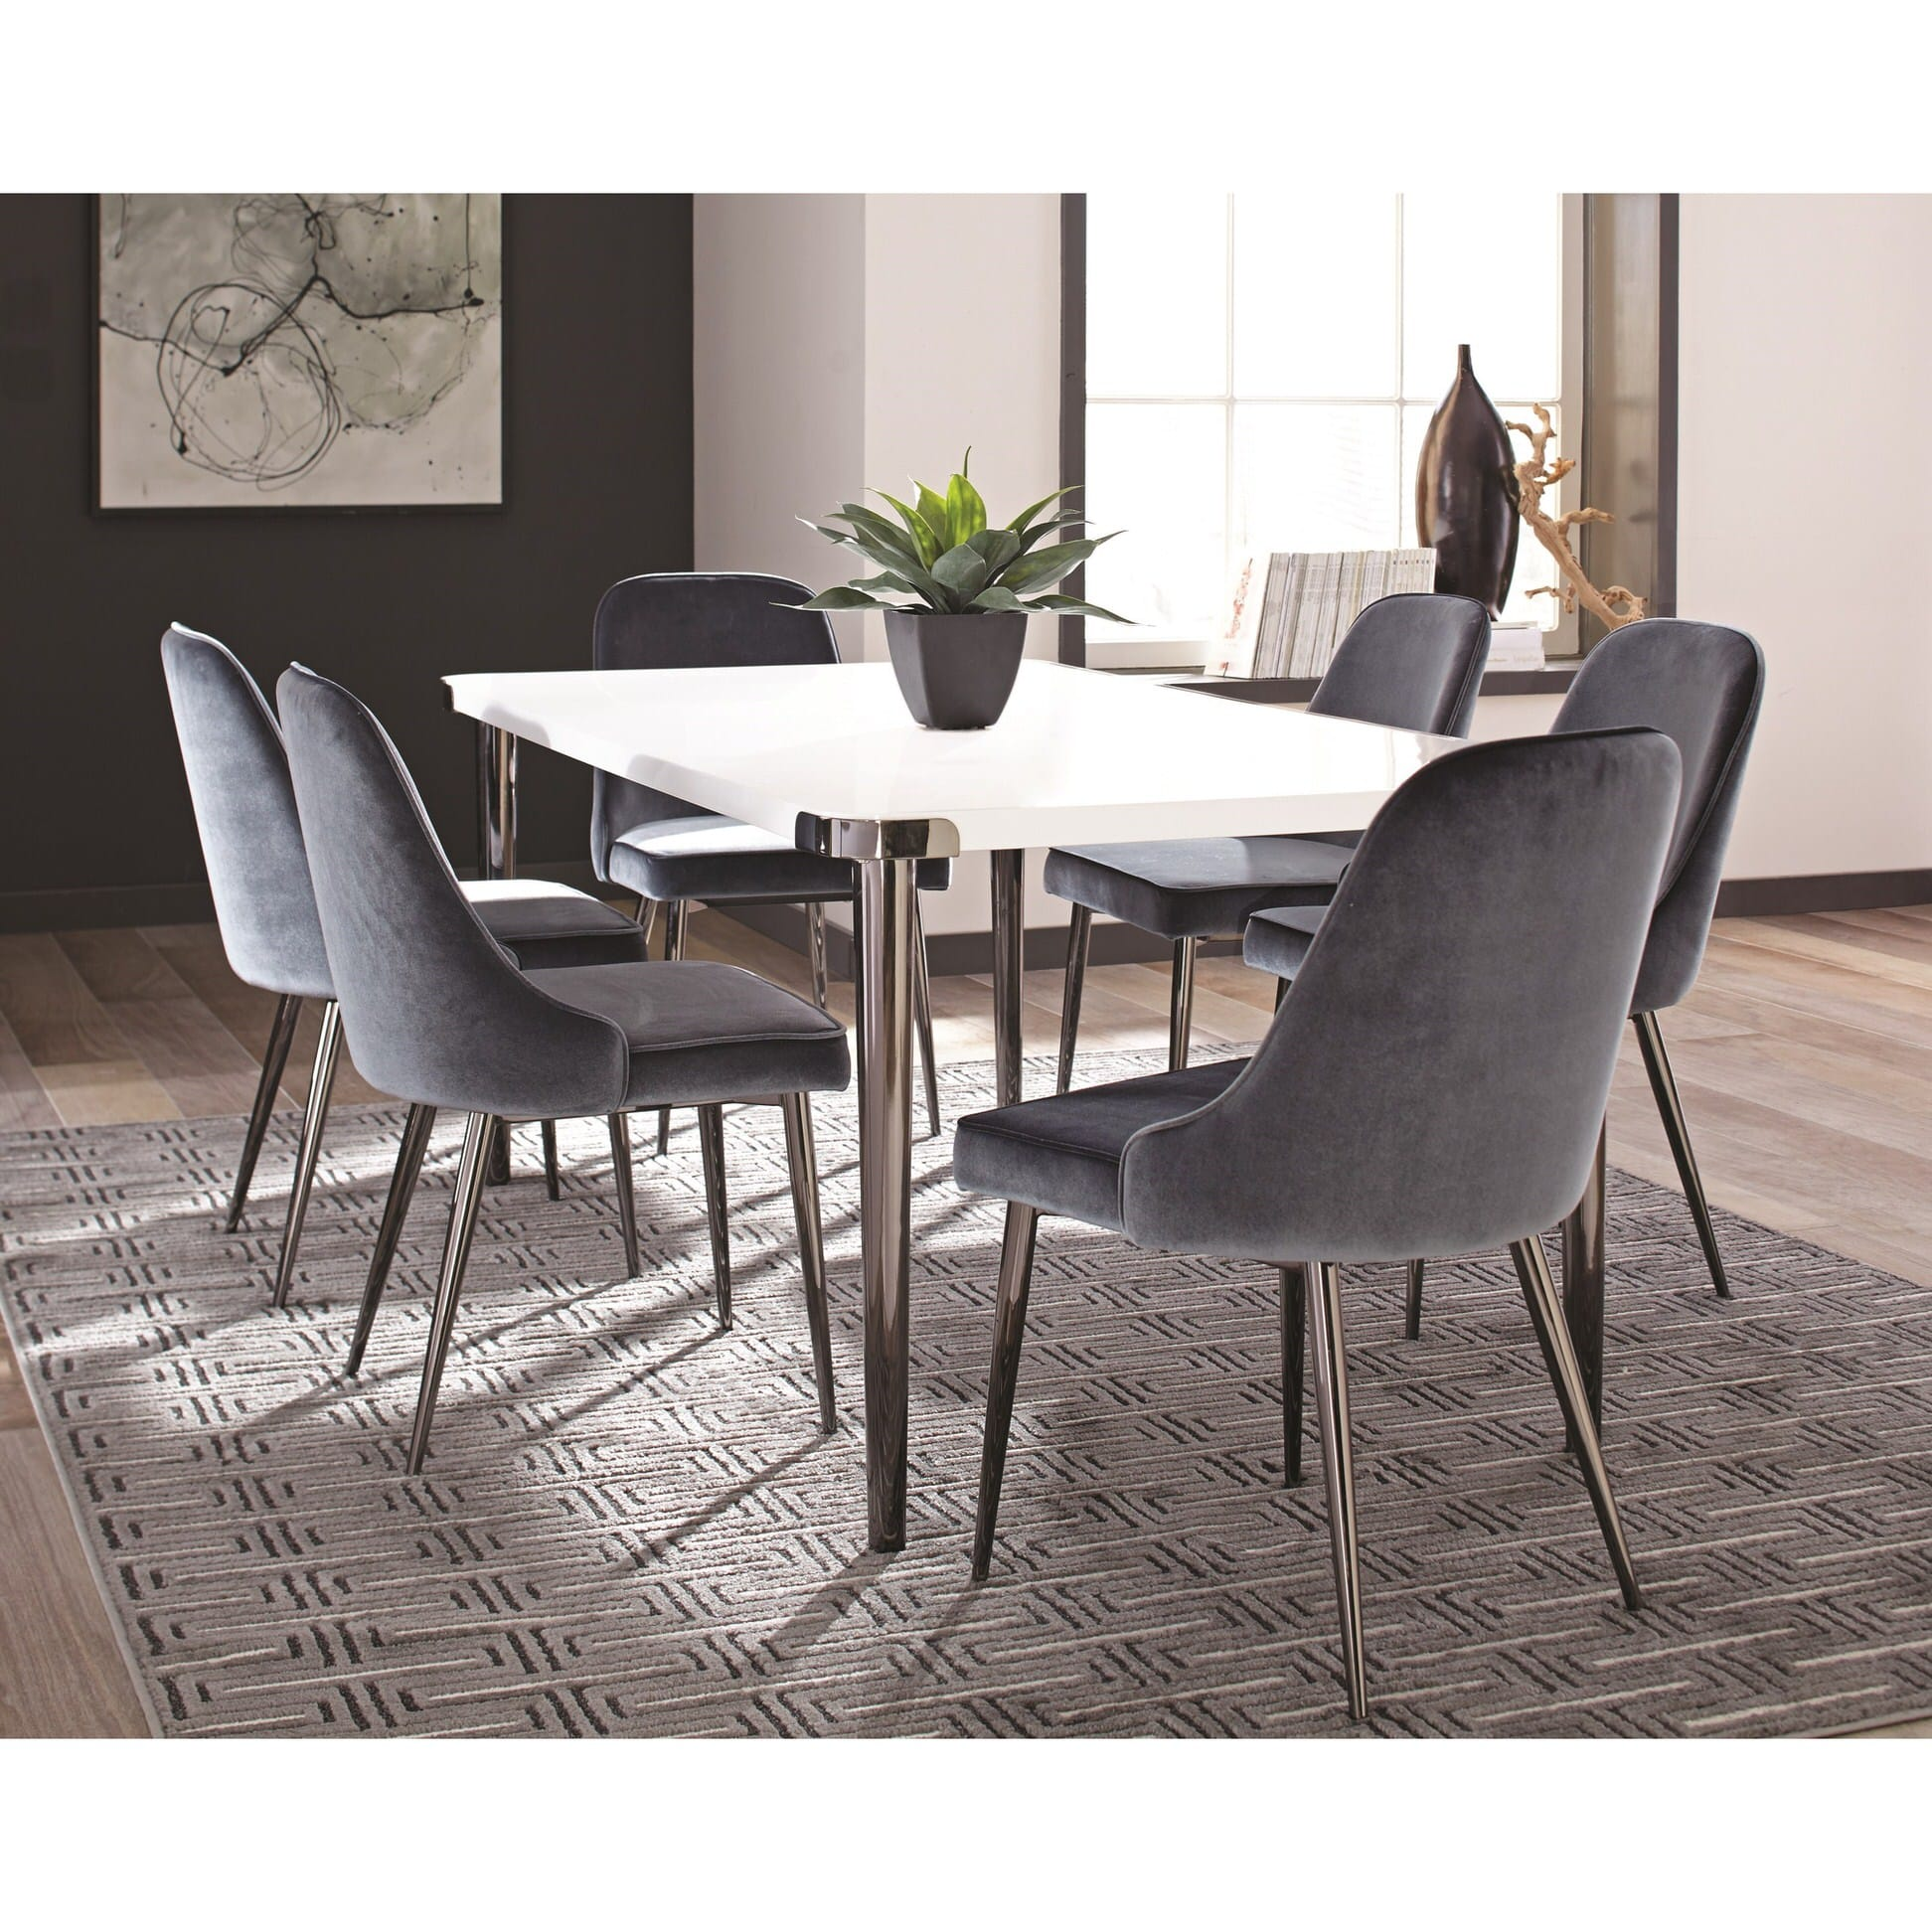 107954 slate blue dining chair by scott living